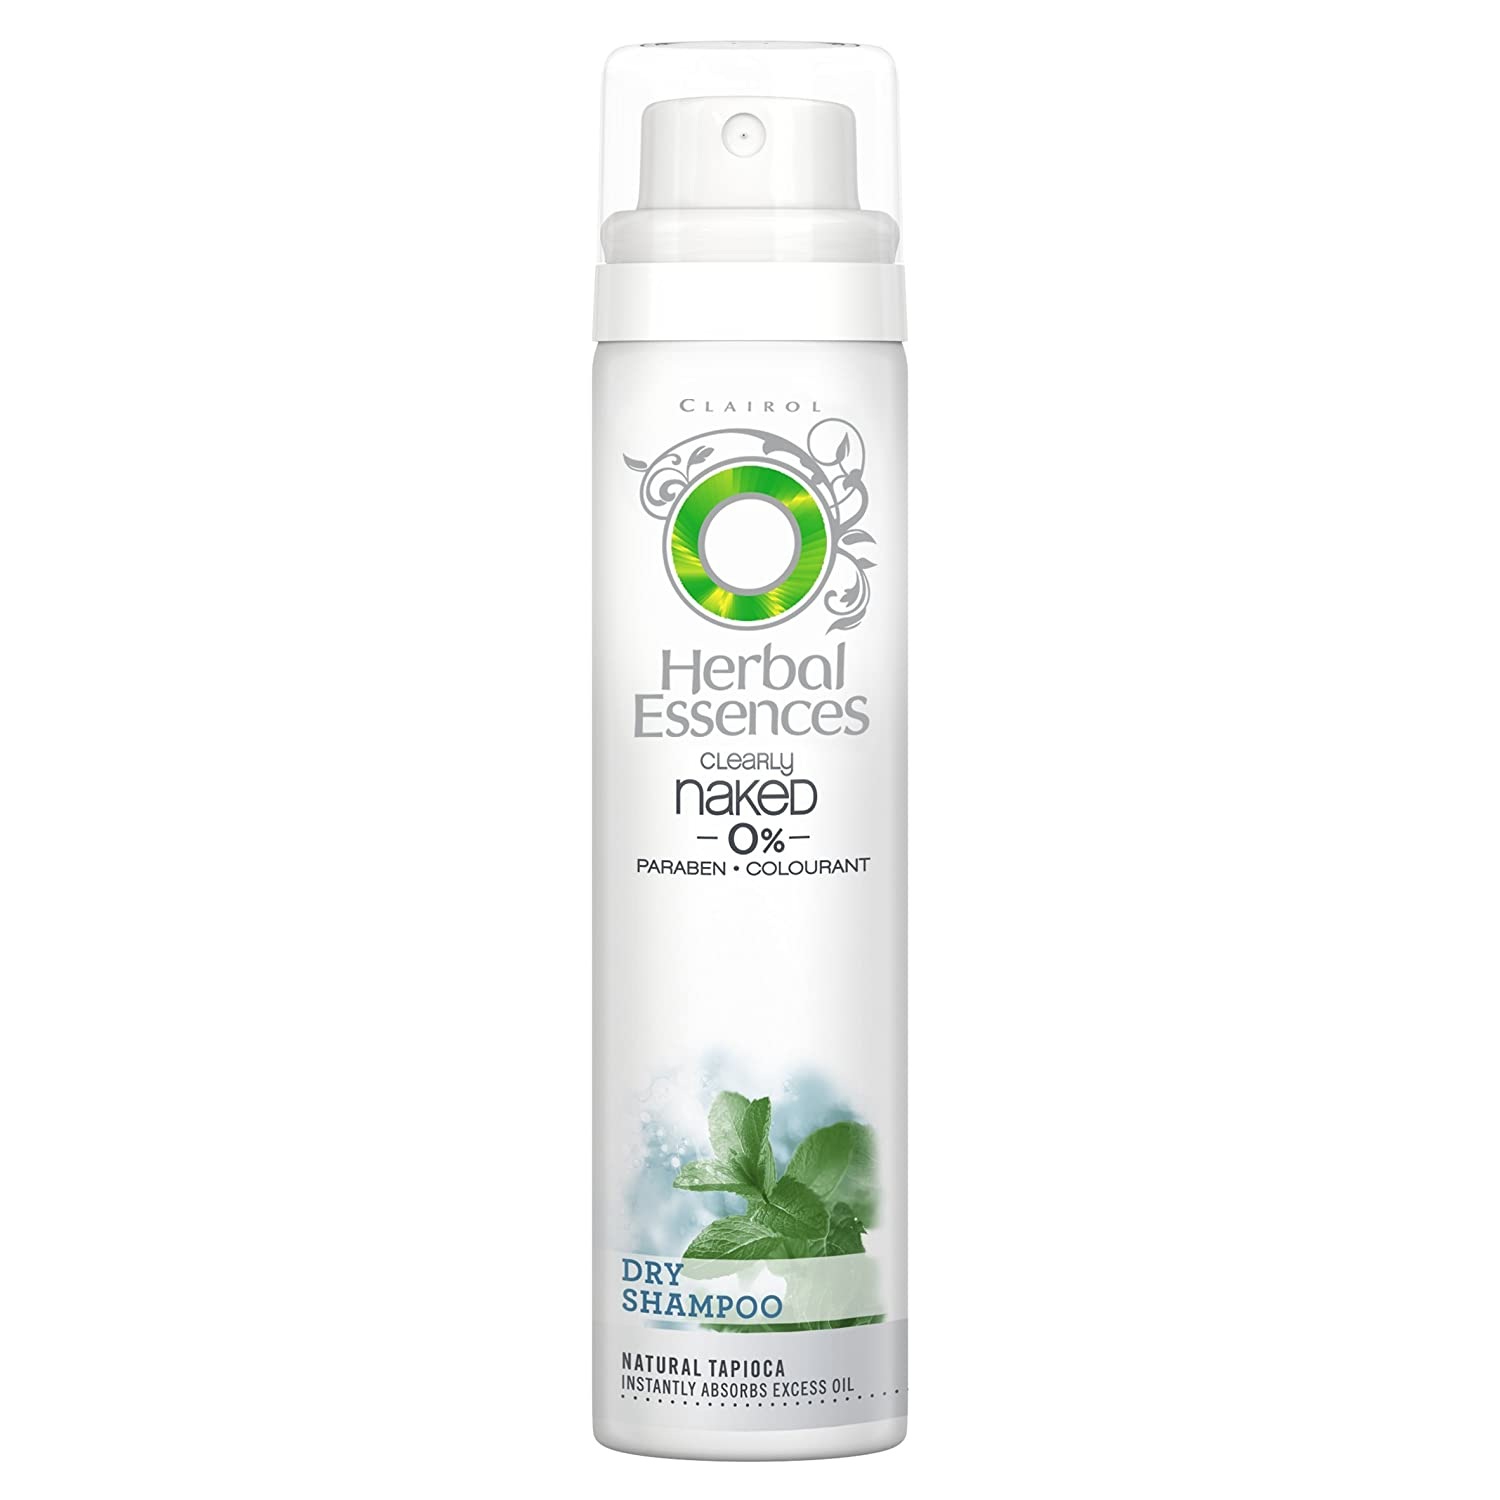 Herbal Essences chiaramente nudo (0%) shampoo secco, no Water – 65 ml no Water - 65 ml P&G 81467207